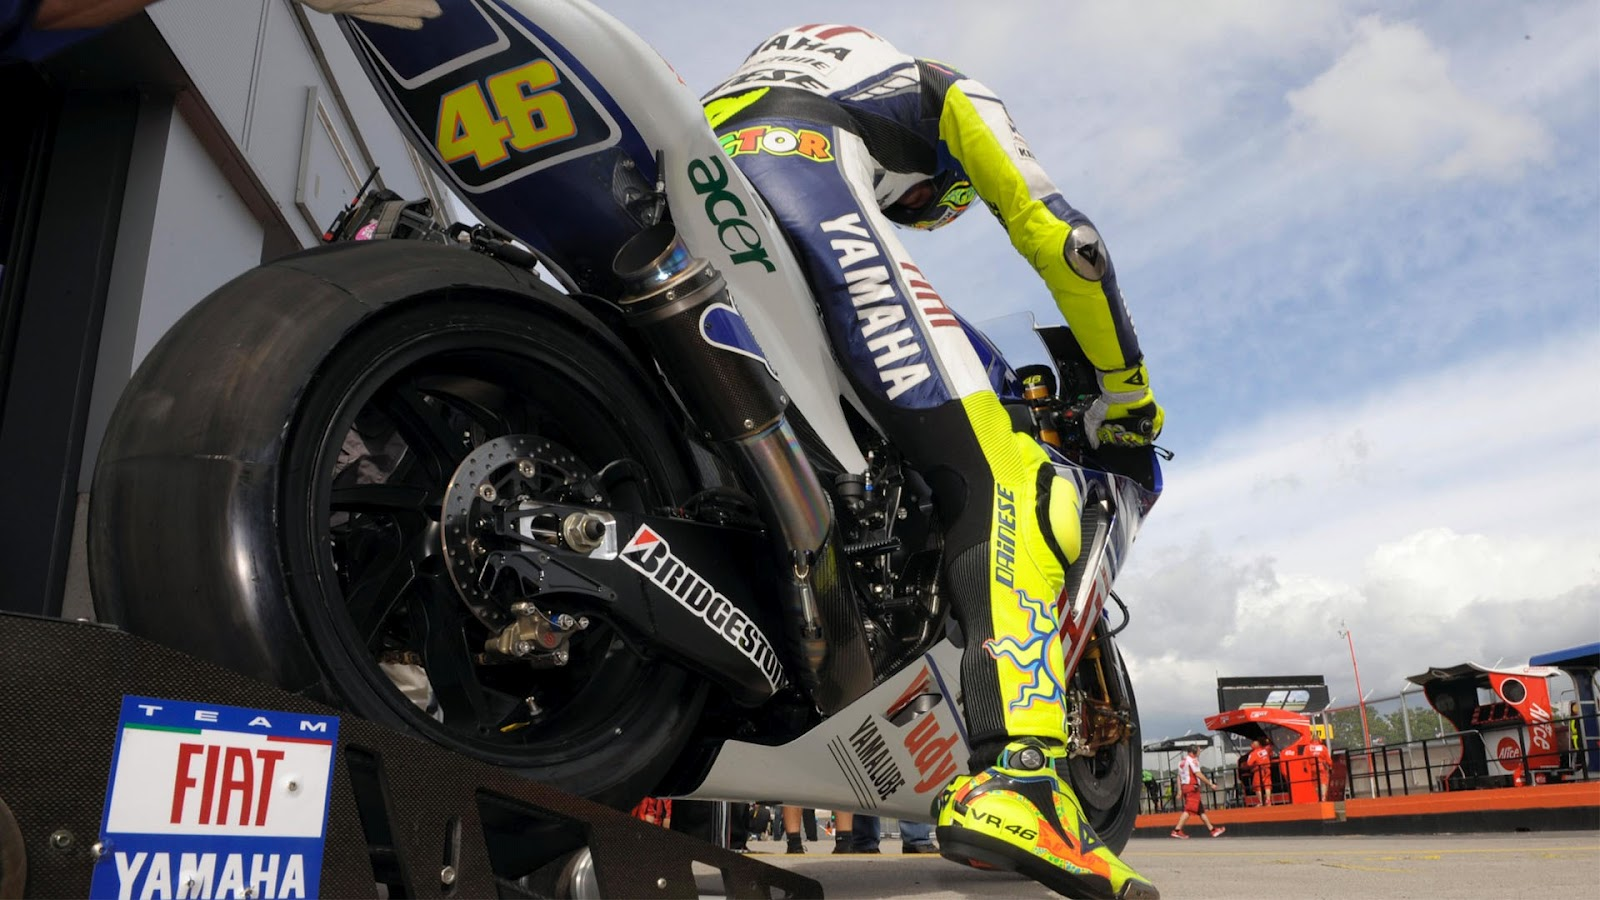 the doctor 46 rossi Valentino Rossi wallpapers in HD